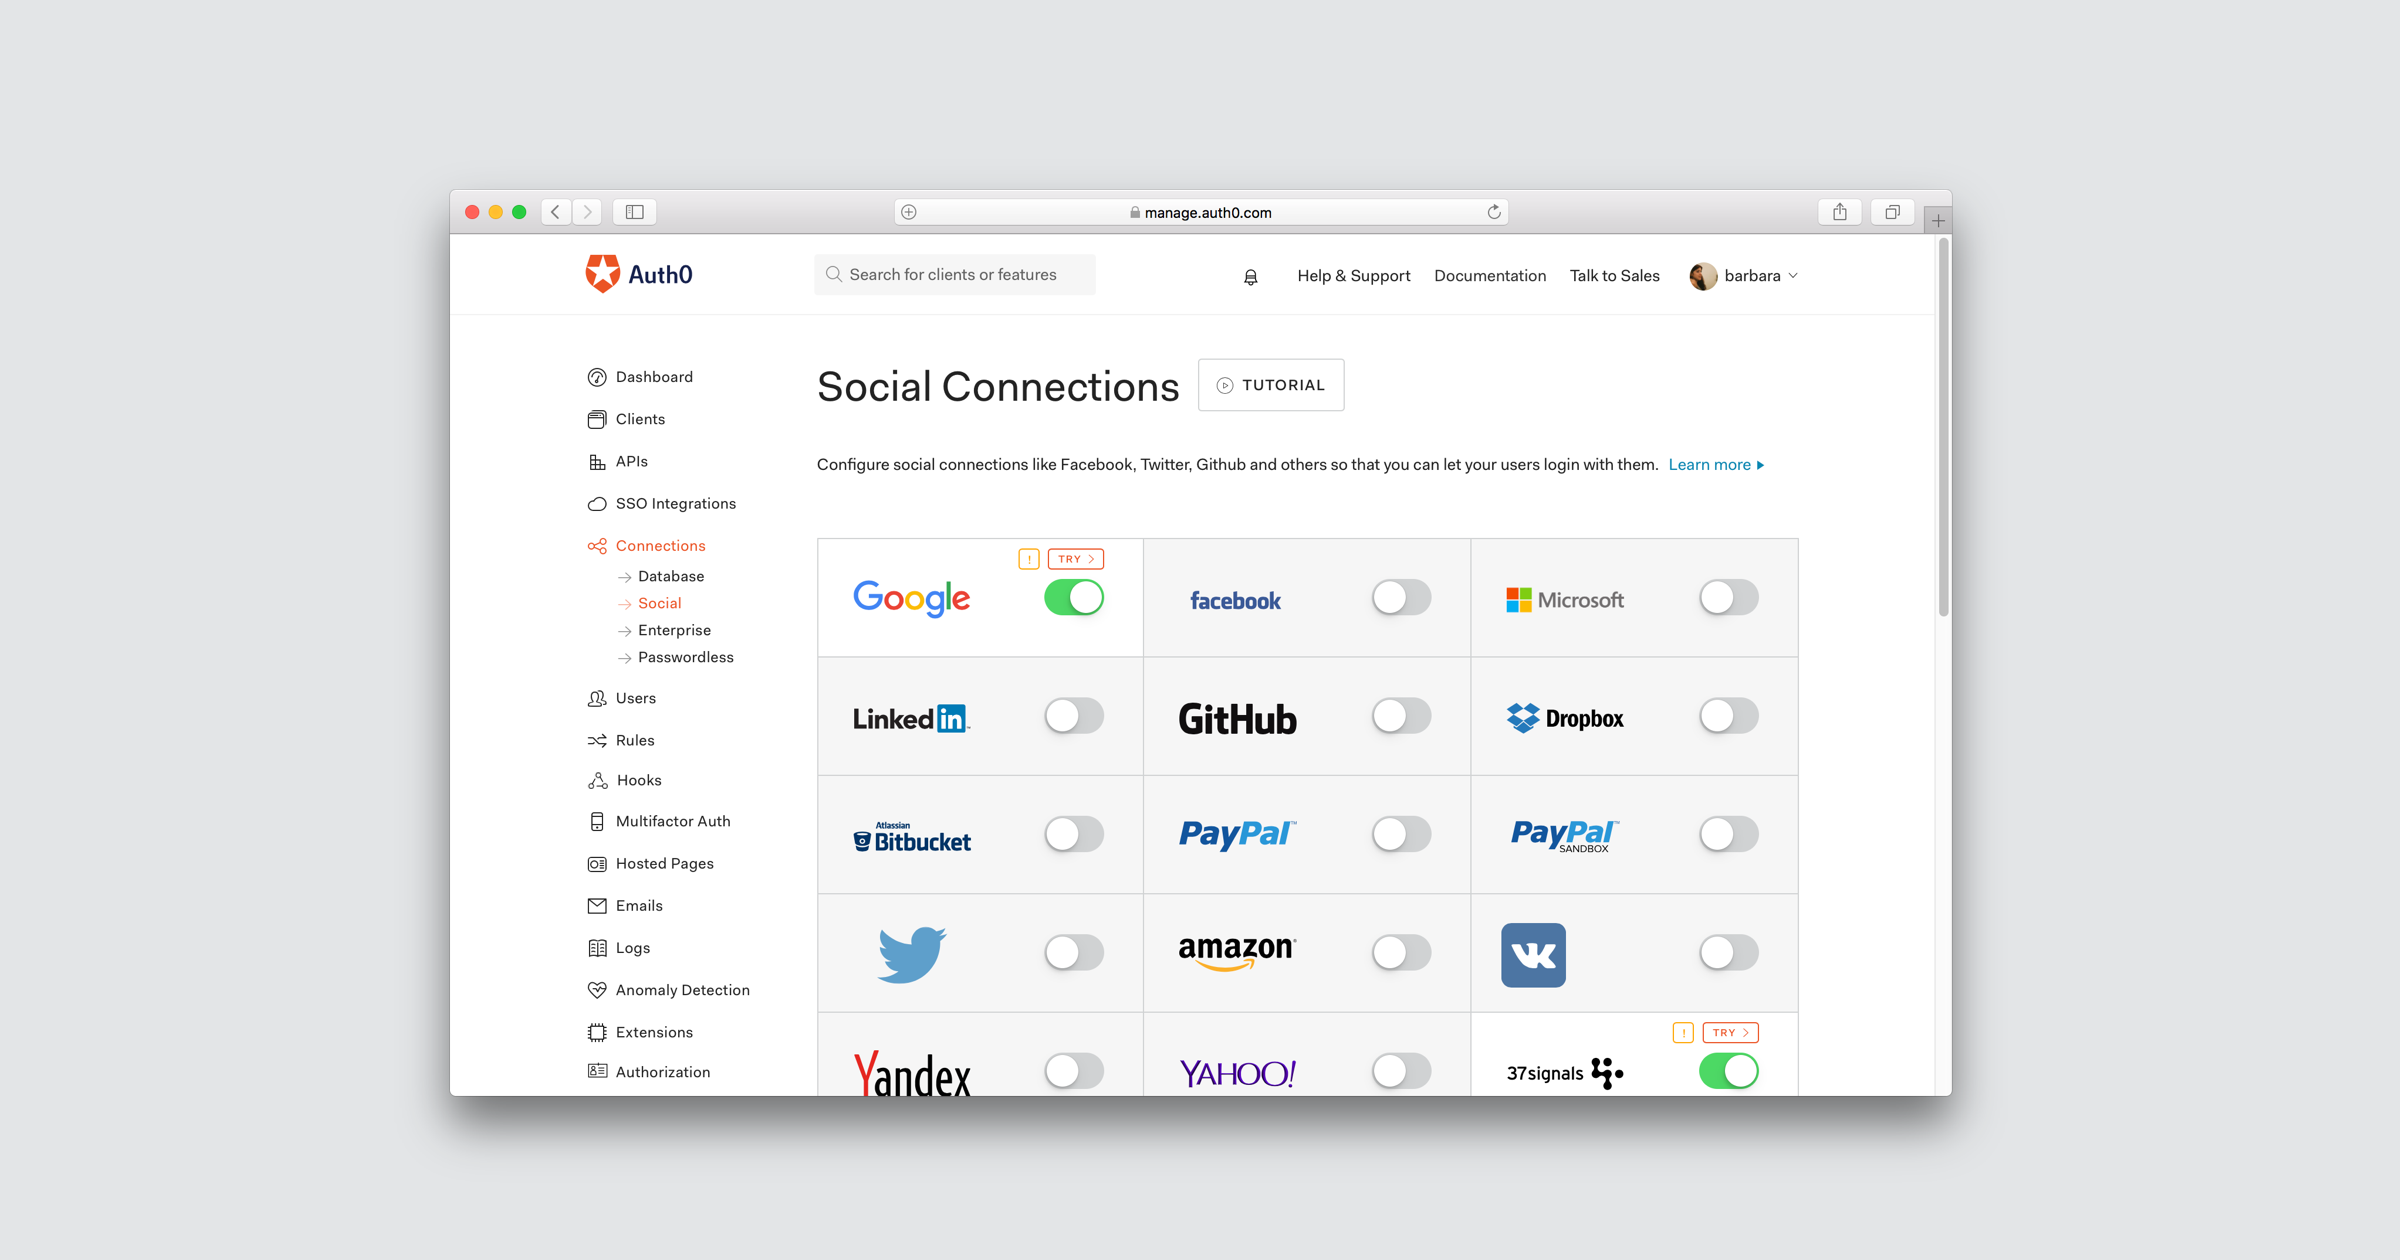 Auth0 social login integrations